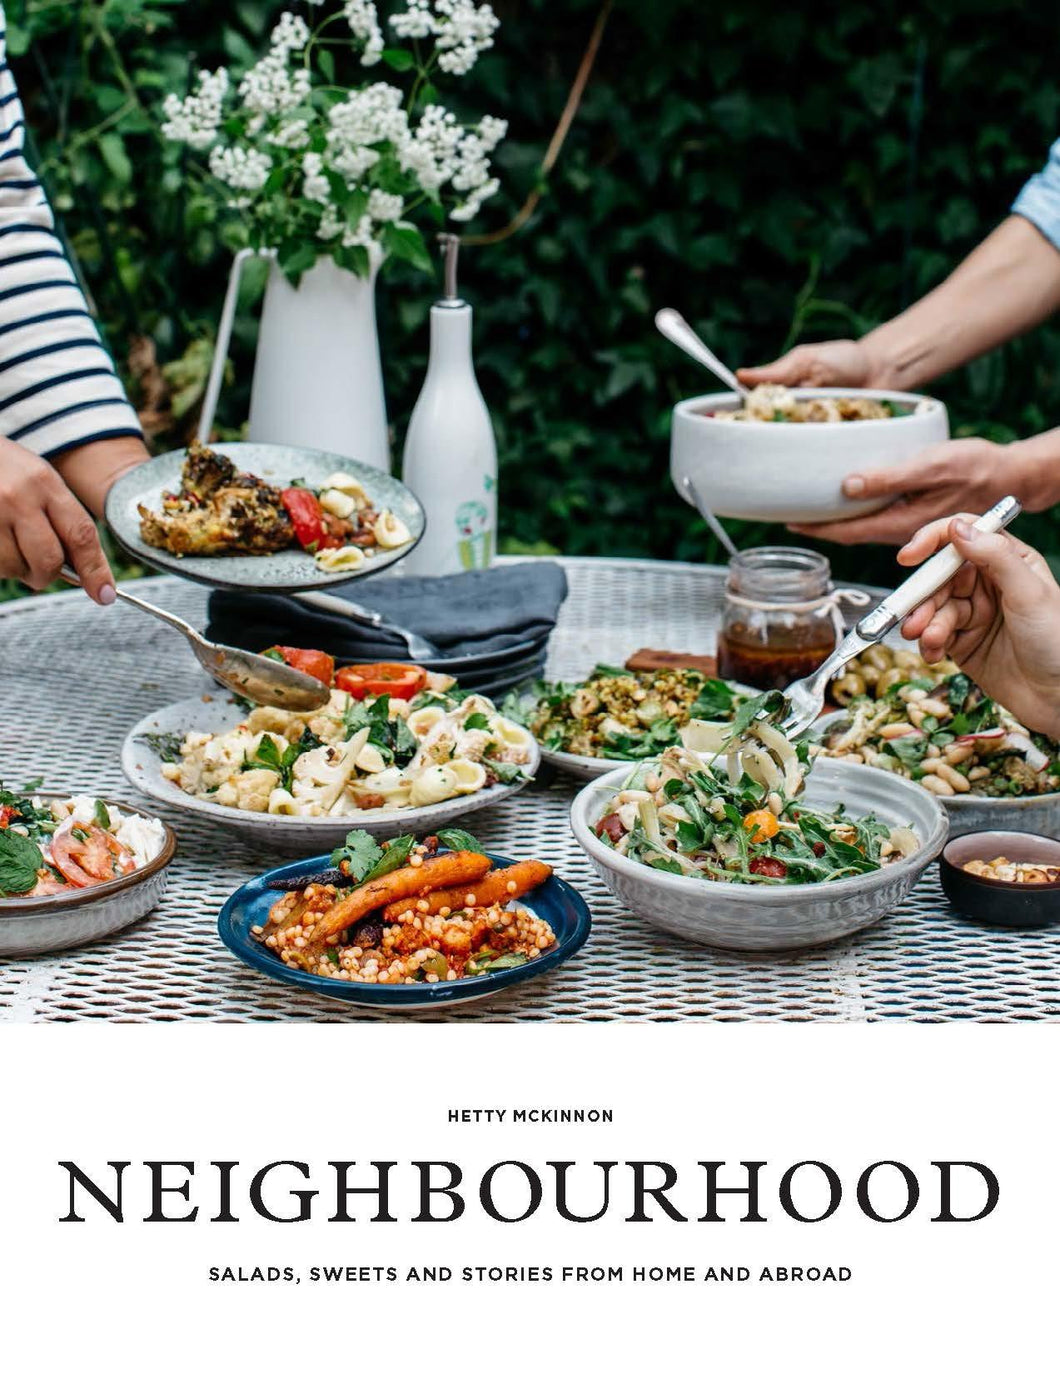 NEIGHBORHOOD Salads, Sweets and Stories from Home and Abroad by Hetty McKinnon - STIL Lifestyle